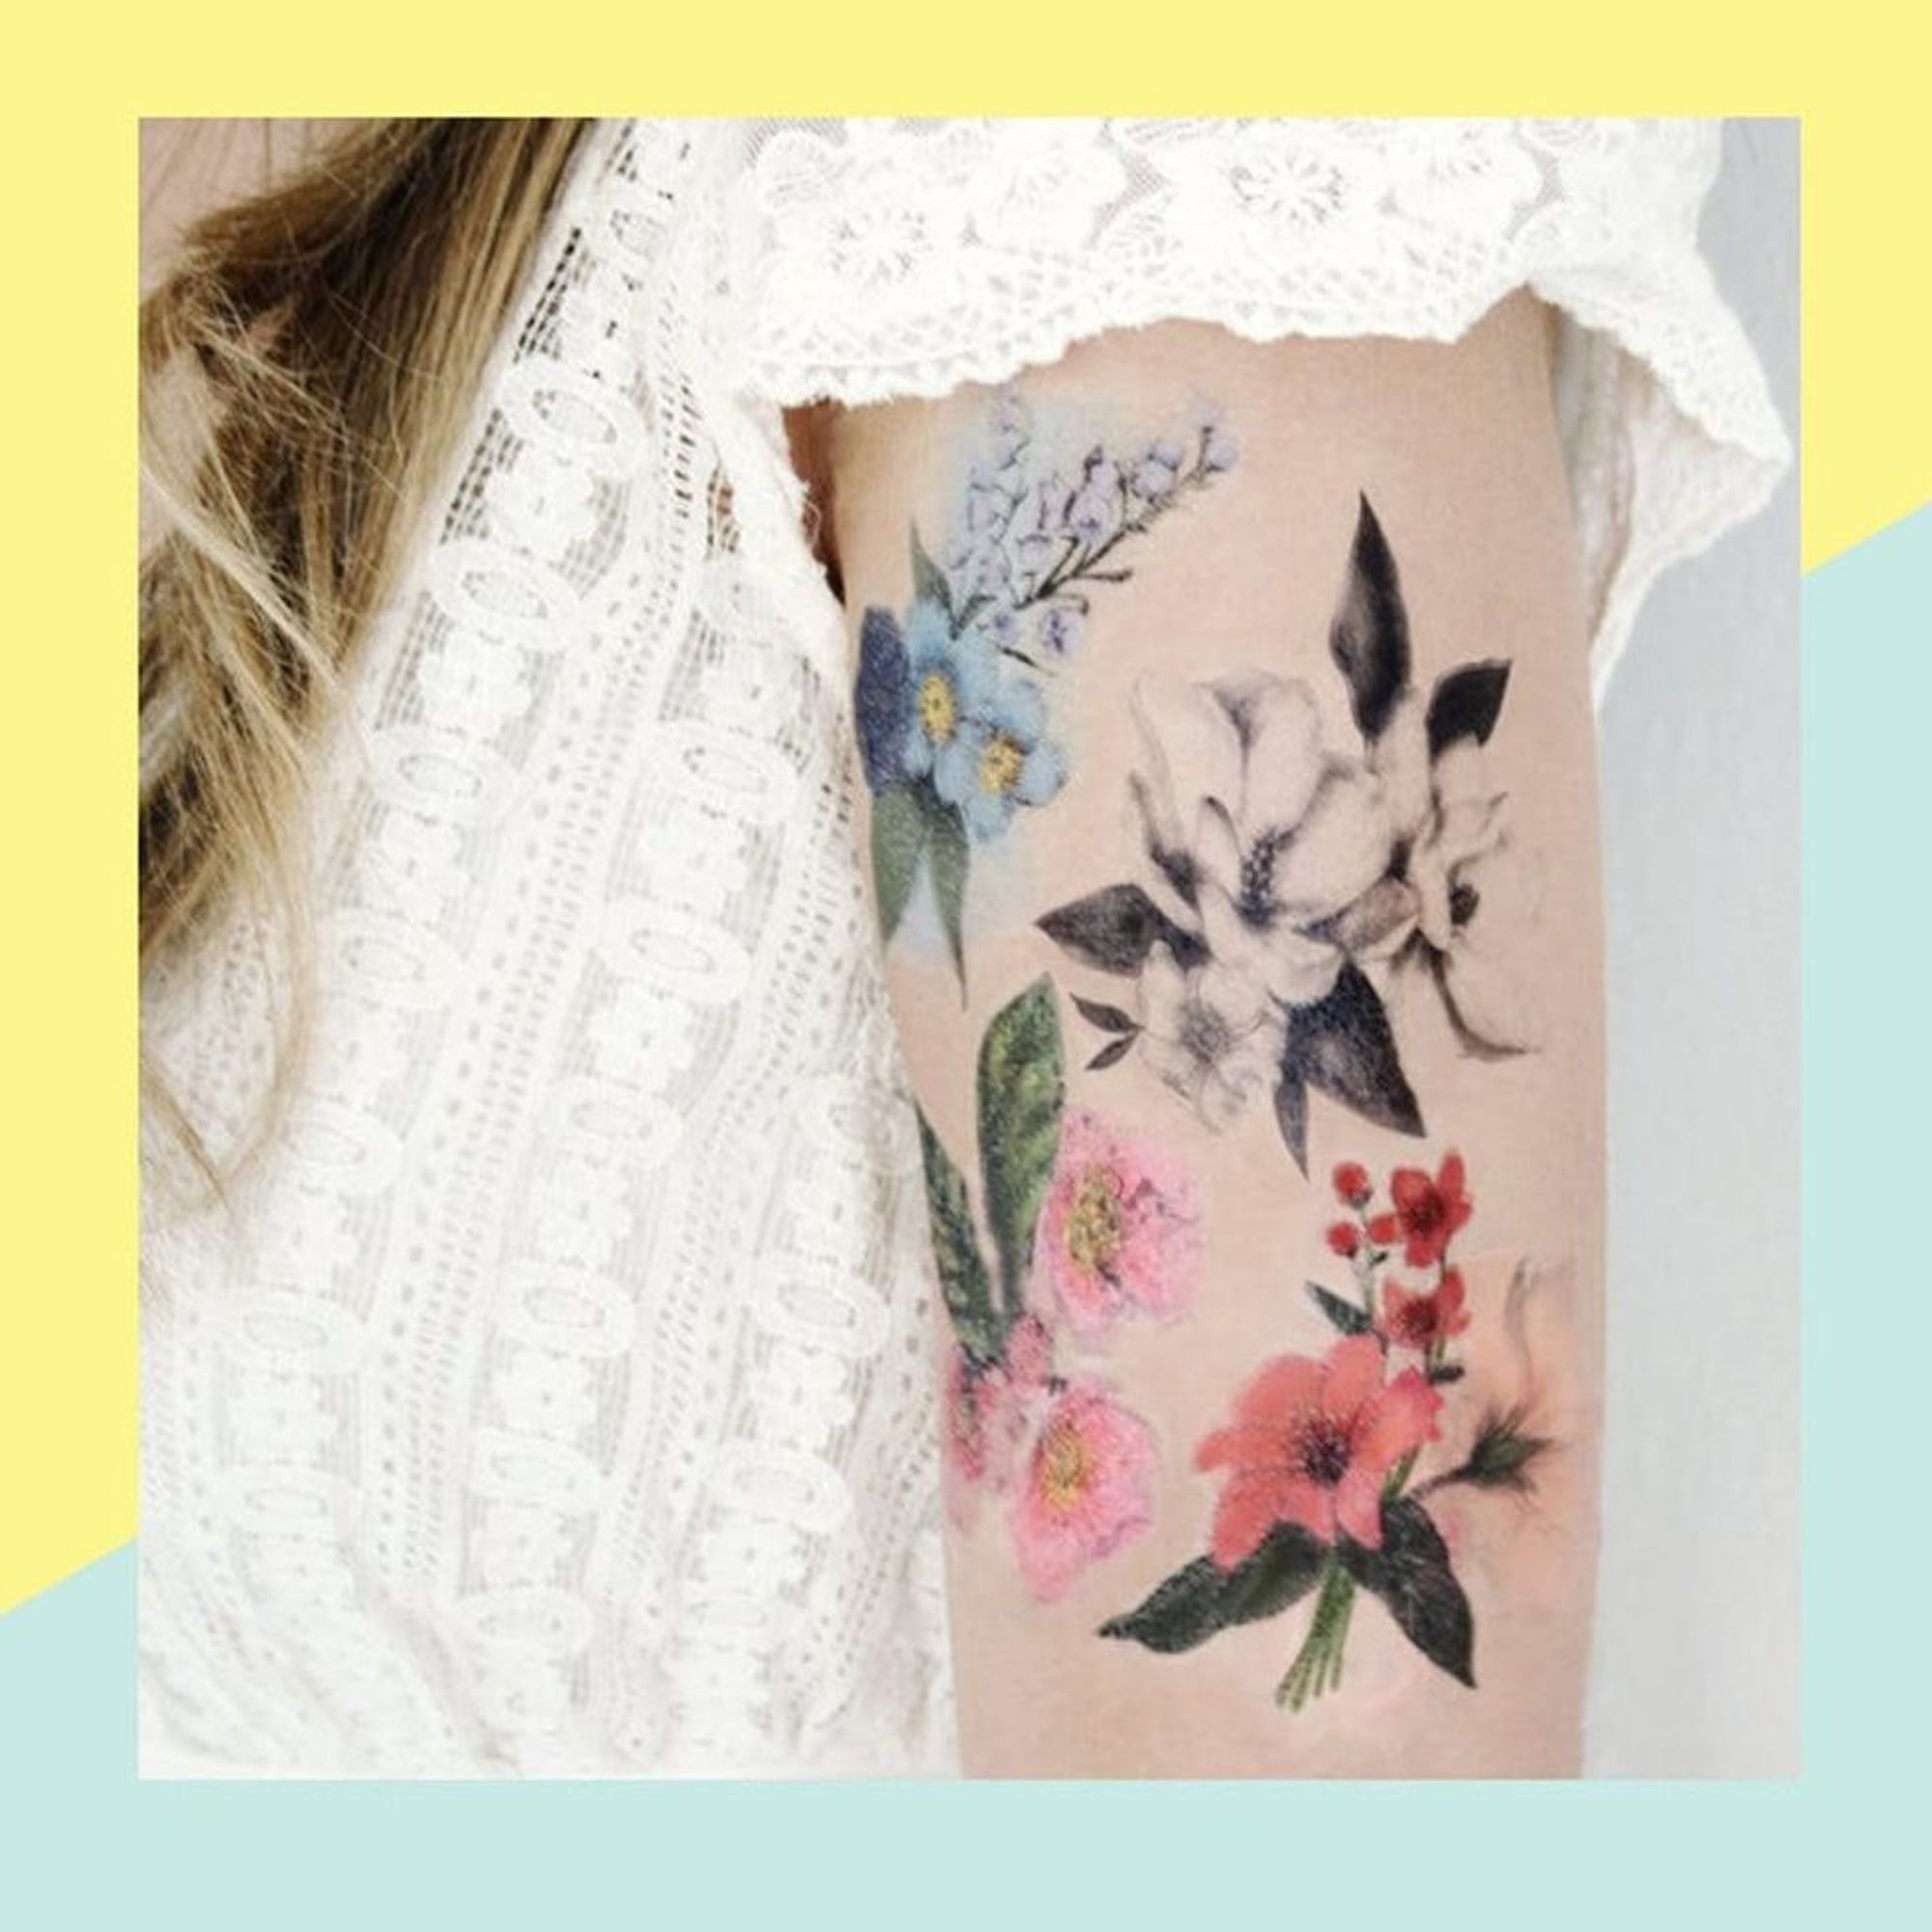 97 Jaw Dropping Henna Tattoo Ideas That You Gotta See: 7 Jaw-Dropping Temporary Tattoos When You Can't Commit